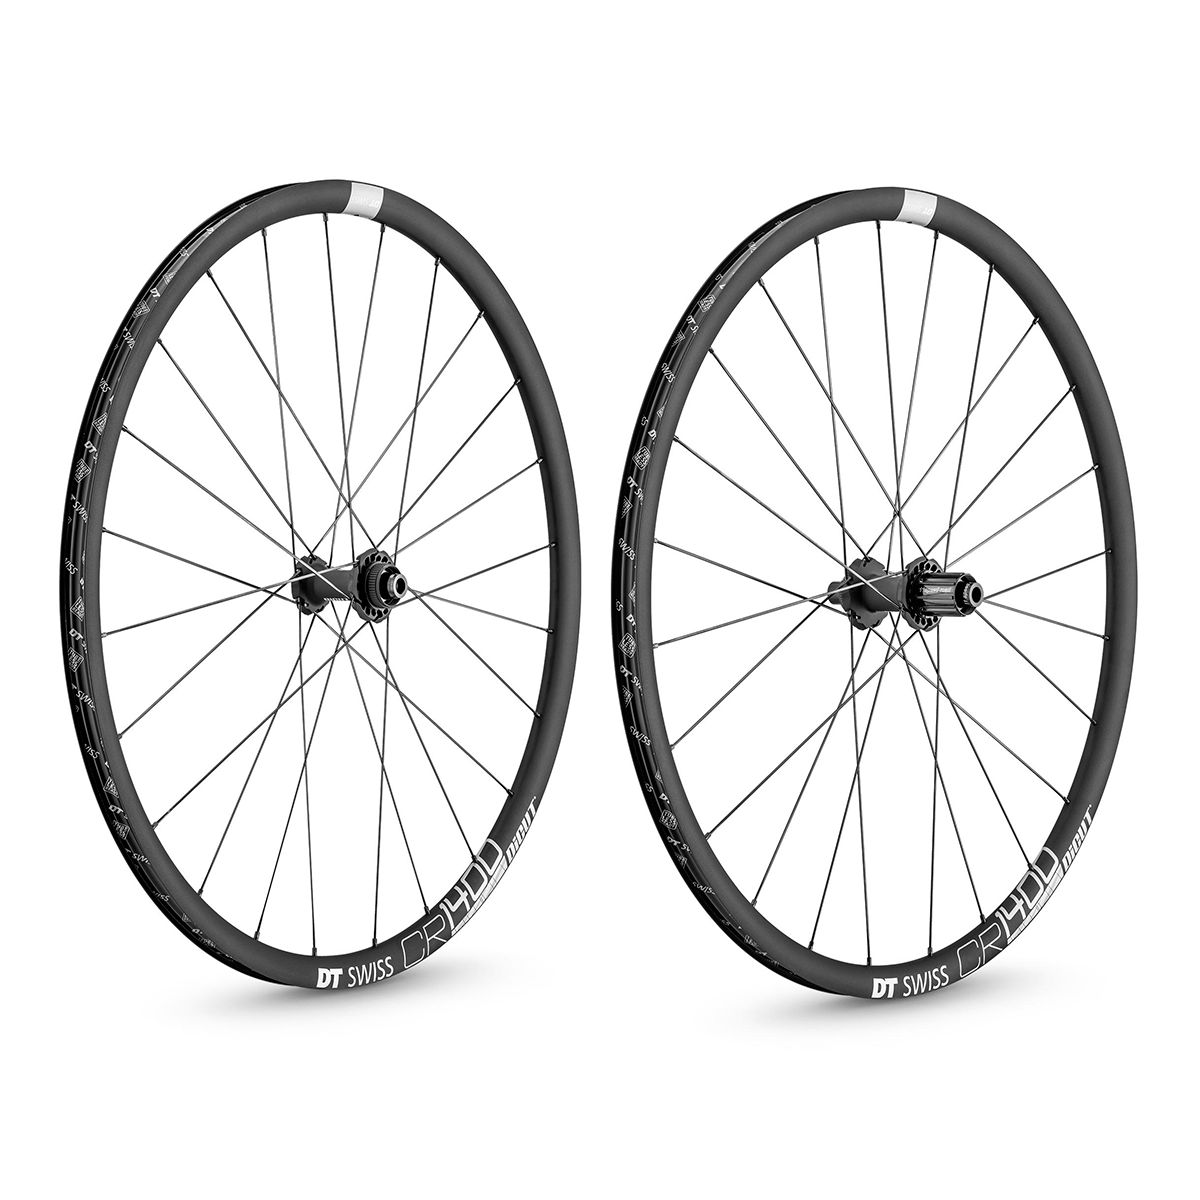 CR 1400 Dicut® 25 DB Road/Cross/Gravel Wheels 28